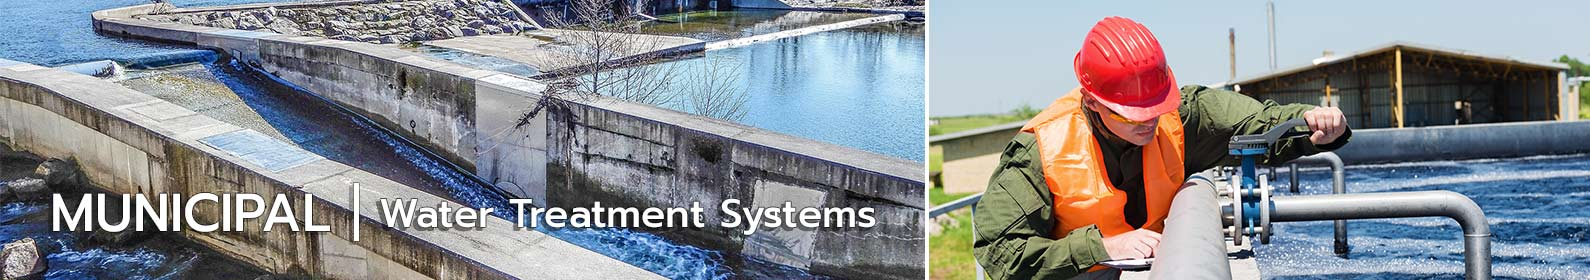 water treatment systems for municipal industry